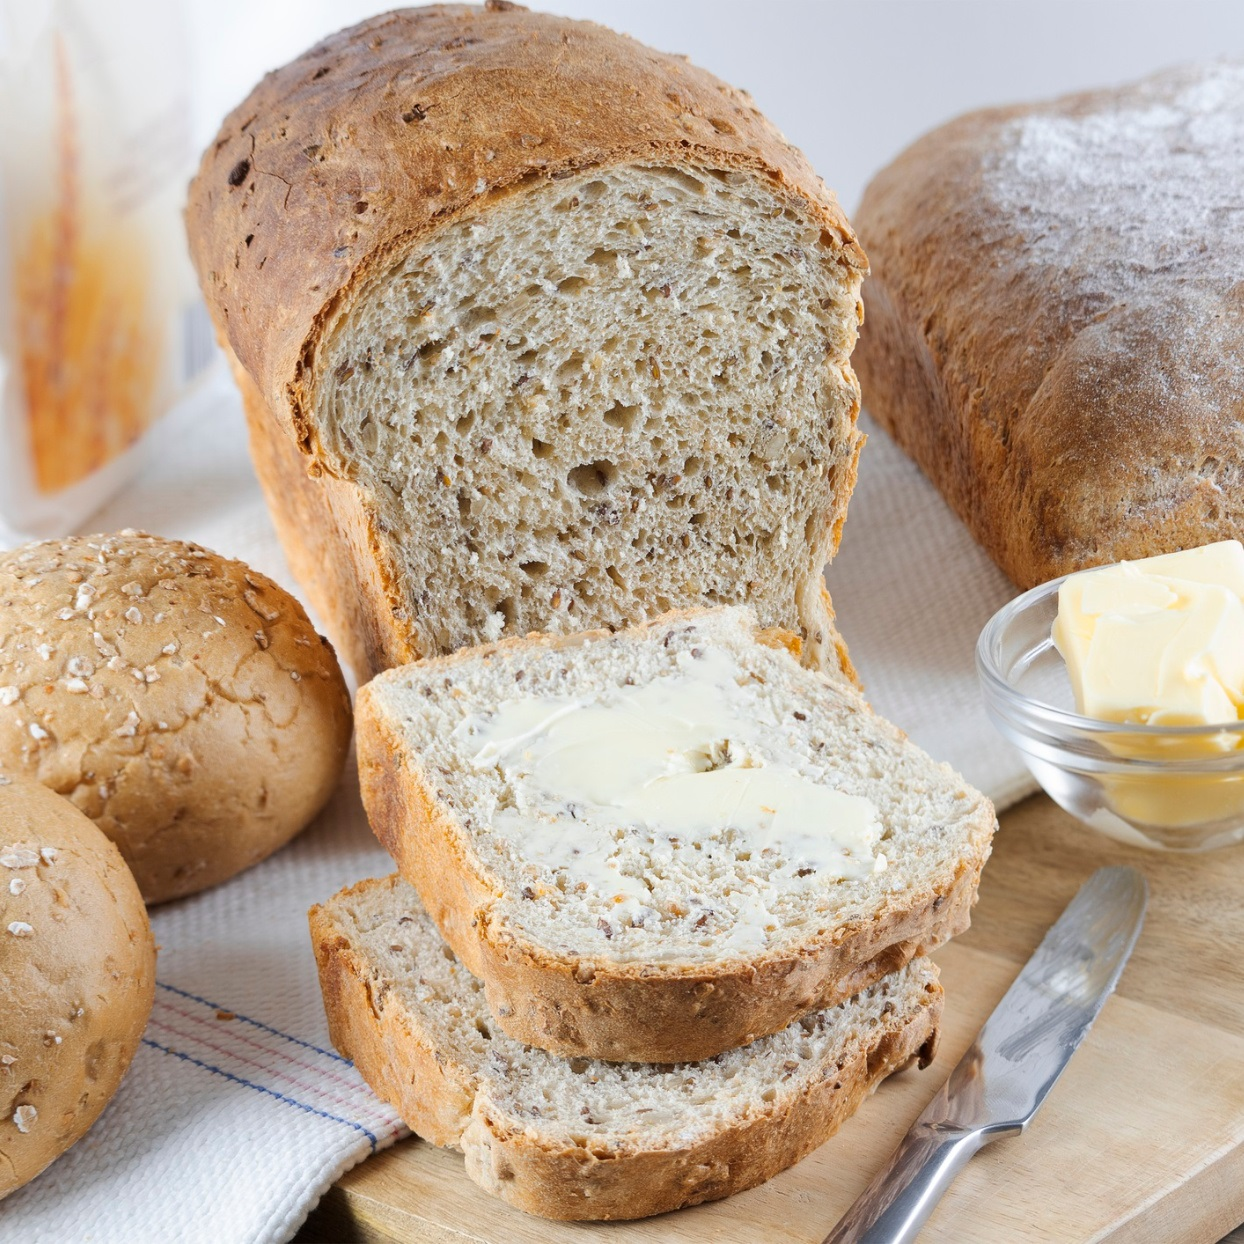 bread whole and sliced